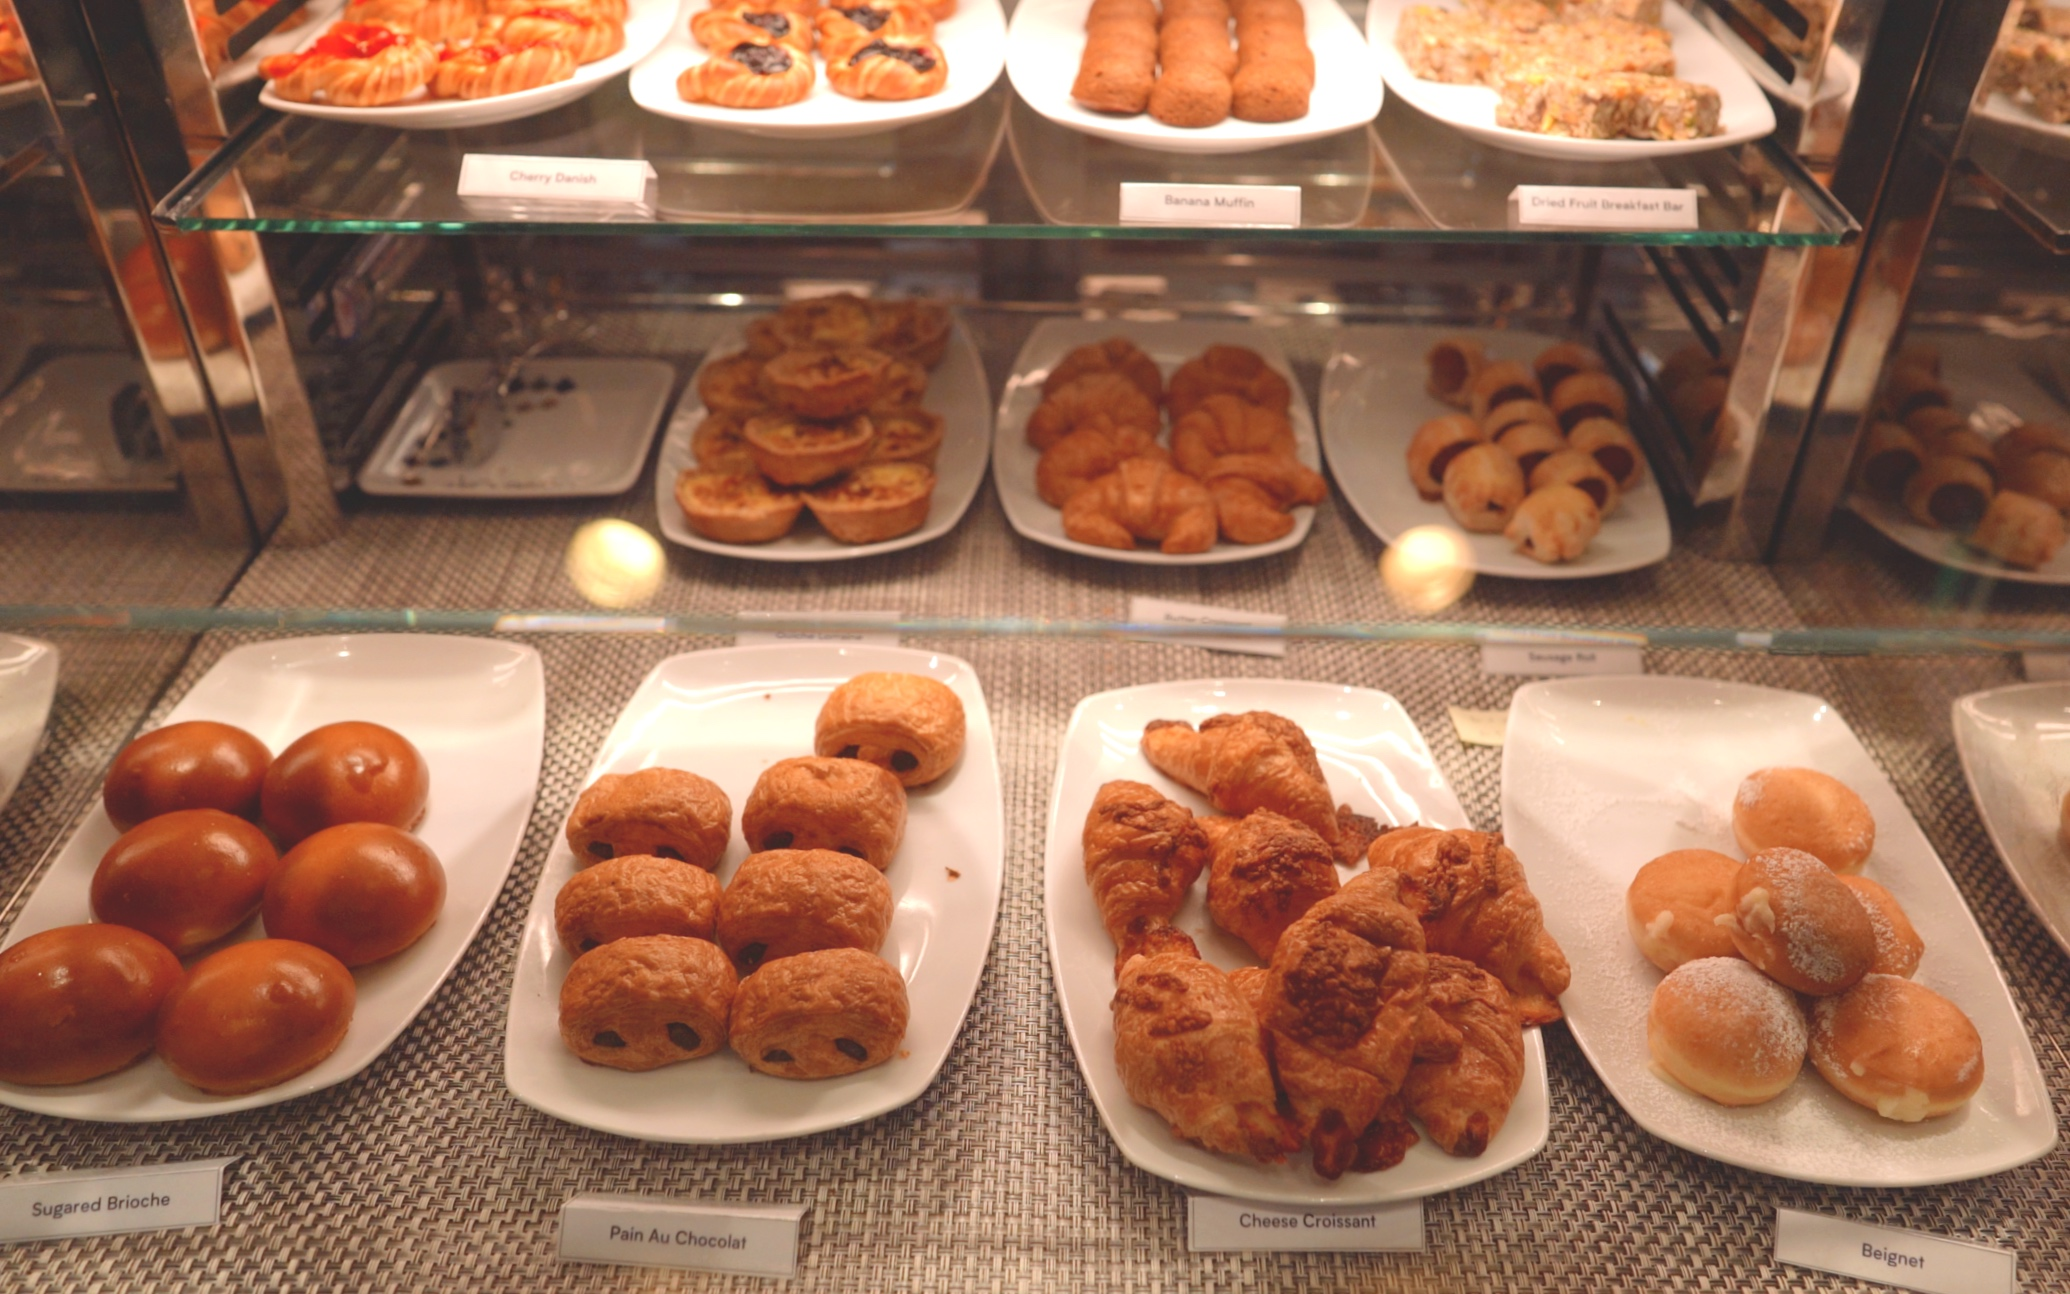 Breakfast delights at the mosaic cafe